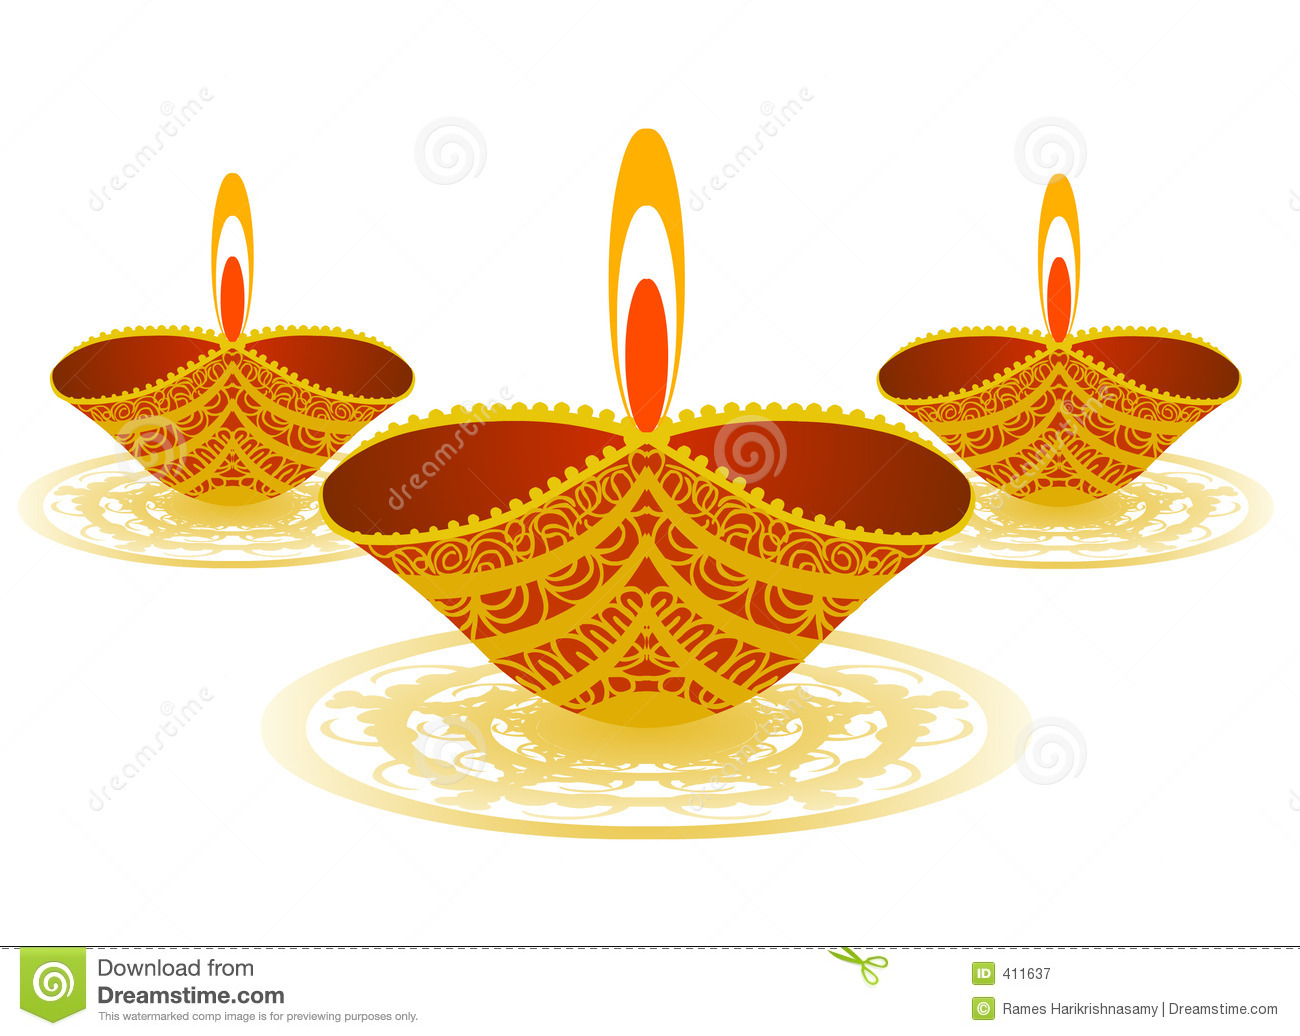 Vector - Oil Lamp. Royalty Free Stock Photography - Image: 411637 Nursing Symbol Design